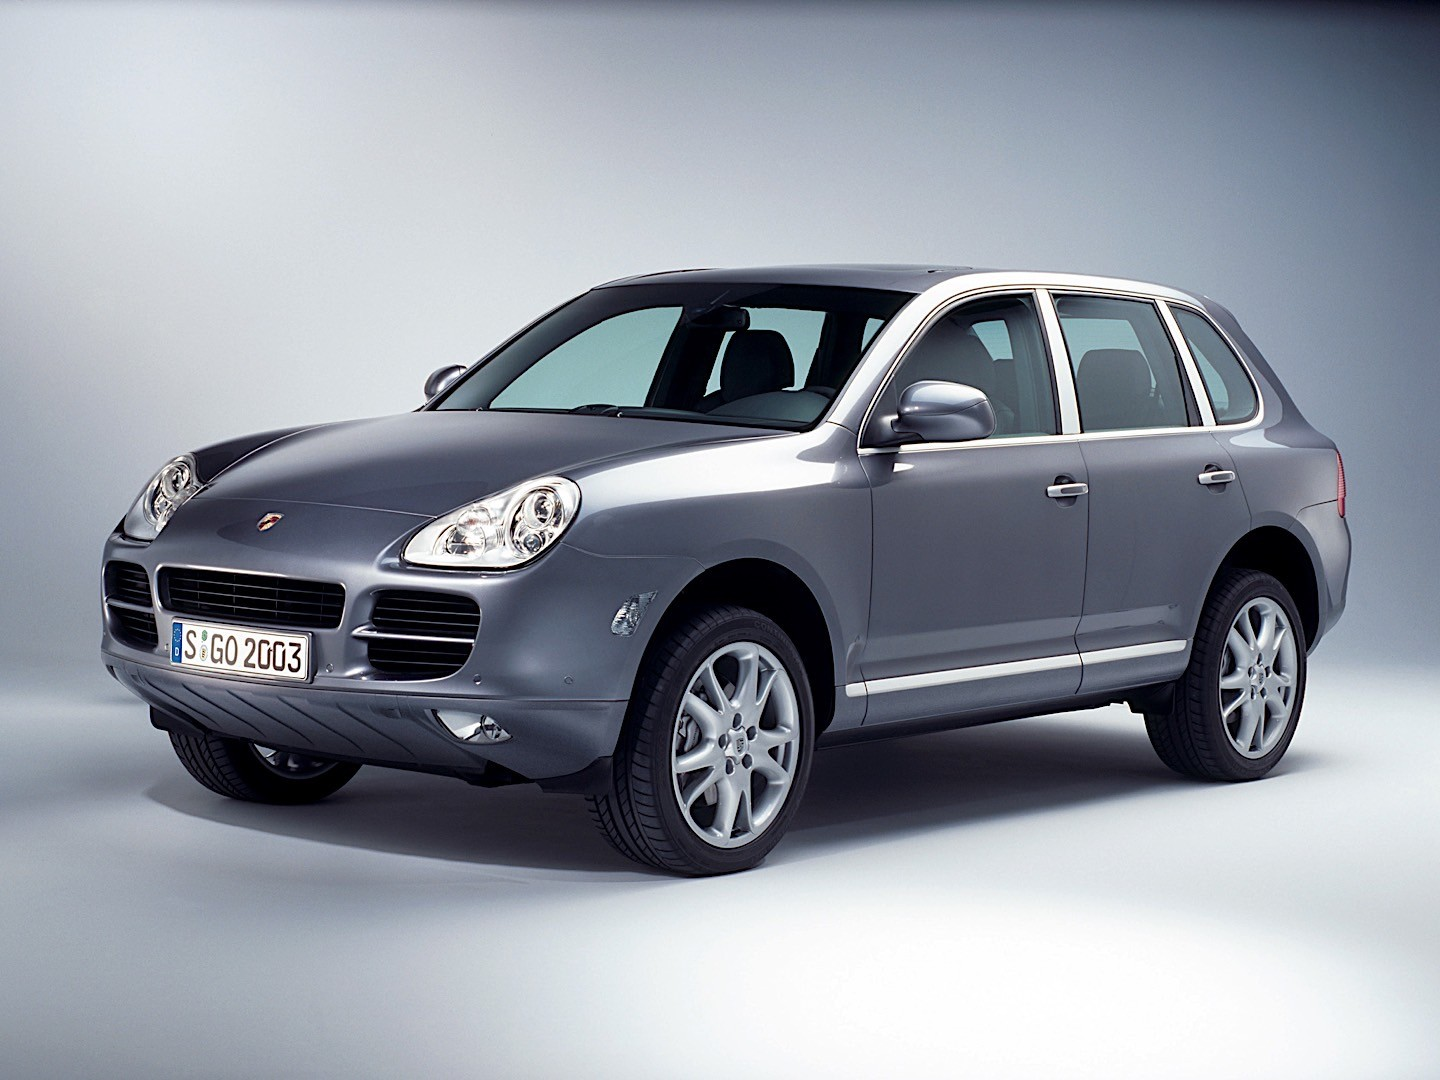 porsche cayenne s 955 specs 2002 2003 2004 2005. Black Bedroom Furniture Sets. Home Design Ideas